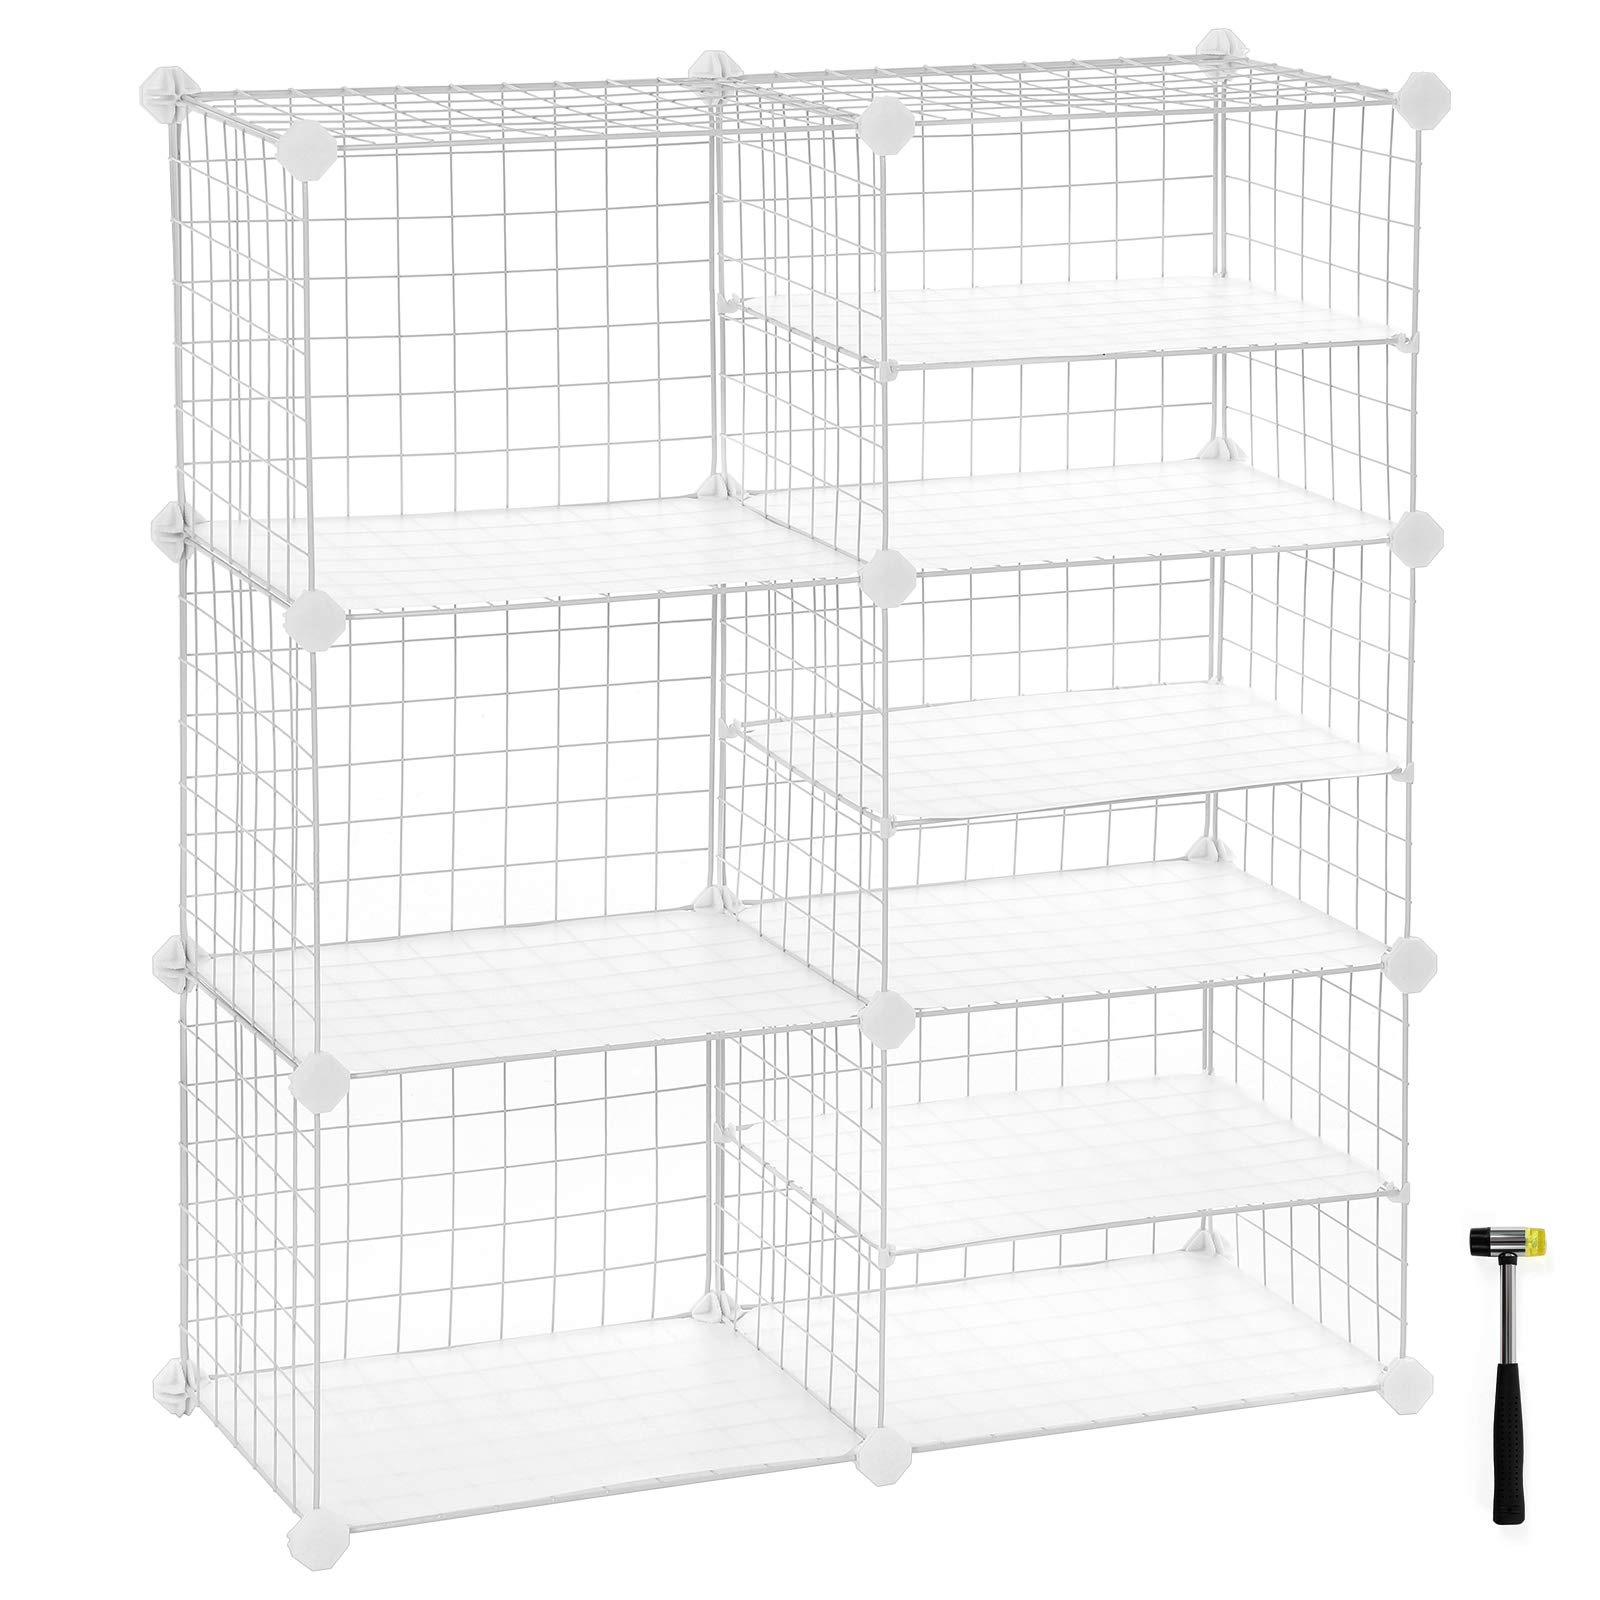 SONGMICS Cube Storage Unit, Interlocking Metal Wire Organizer with Divider Design, Modular Cabinet, Bookcase for Closet Bedroom Kid's Room, 32.7 L x 12.2 W x 36.6 H Inches, White ULPI36W by SONGMICS